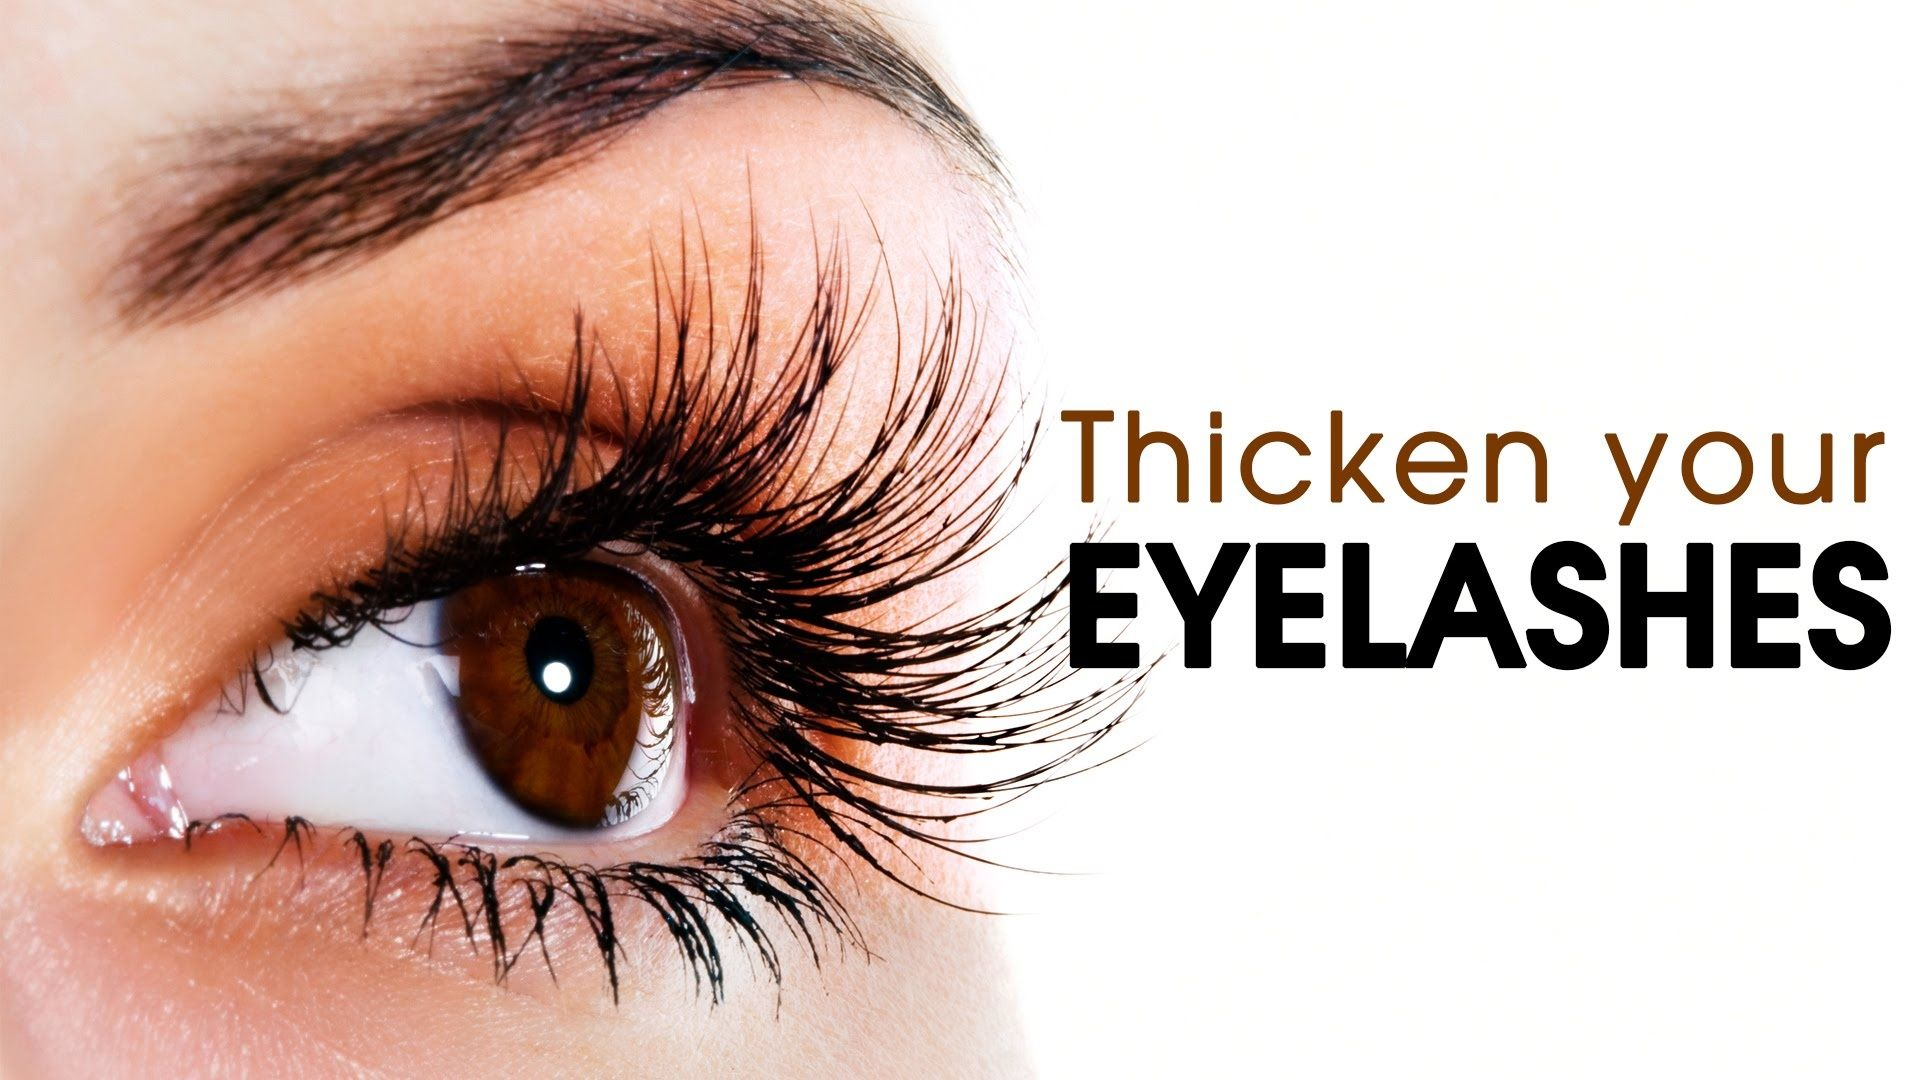 Eyes are most prominent and attractive part of our body